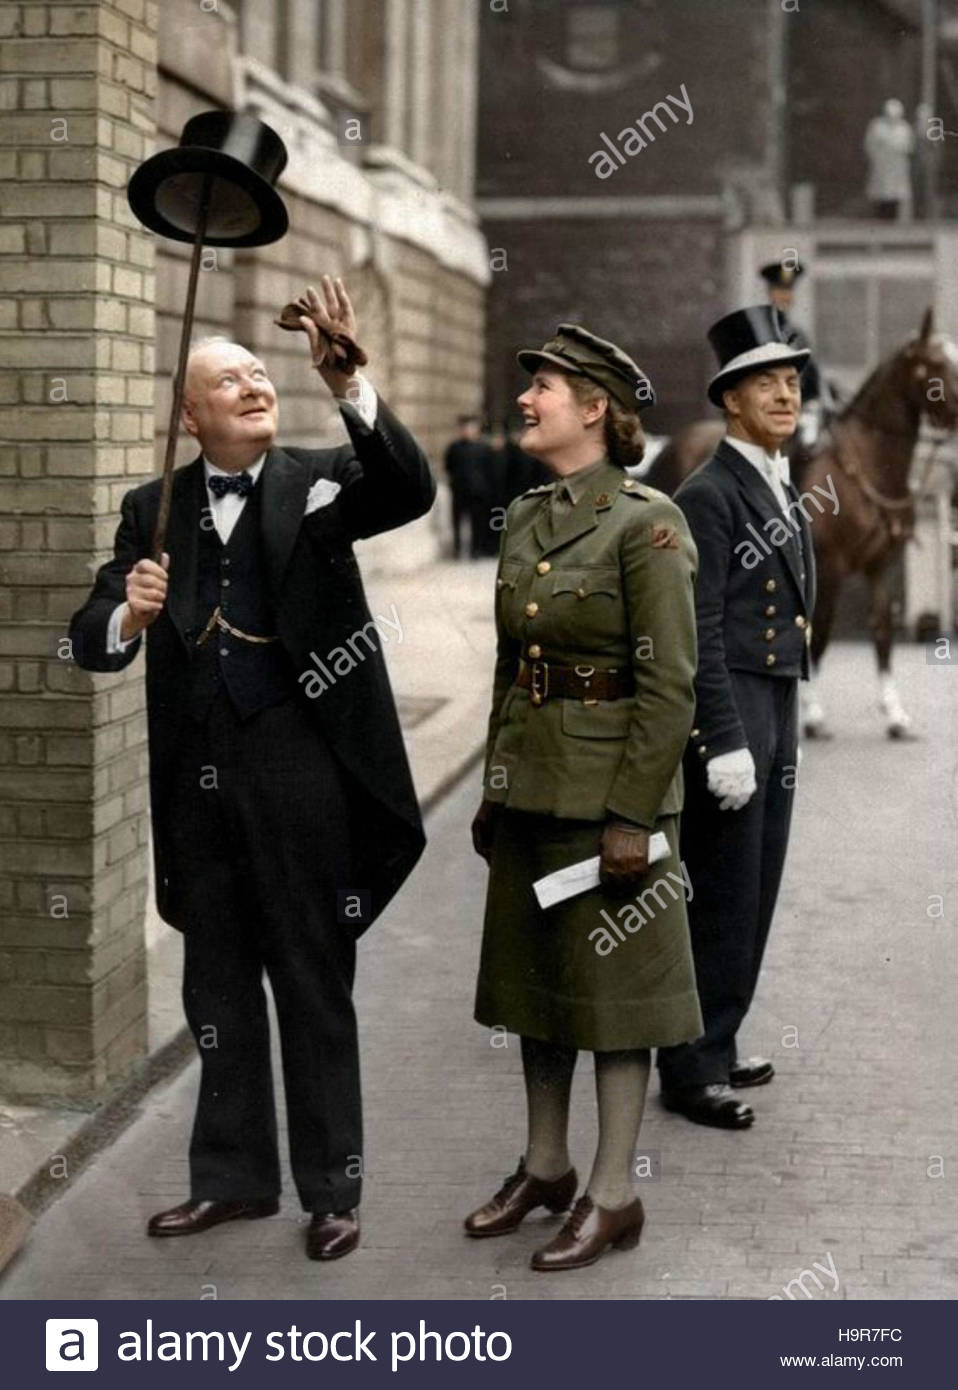 Rare photograph of Sir Winston Churchill with his daughter Lady Mary Soames on Downing St. in London - Stock Image